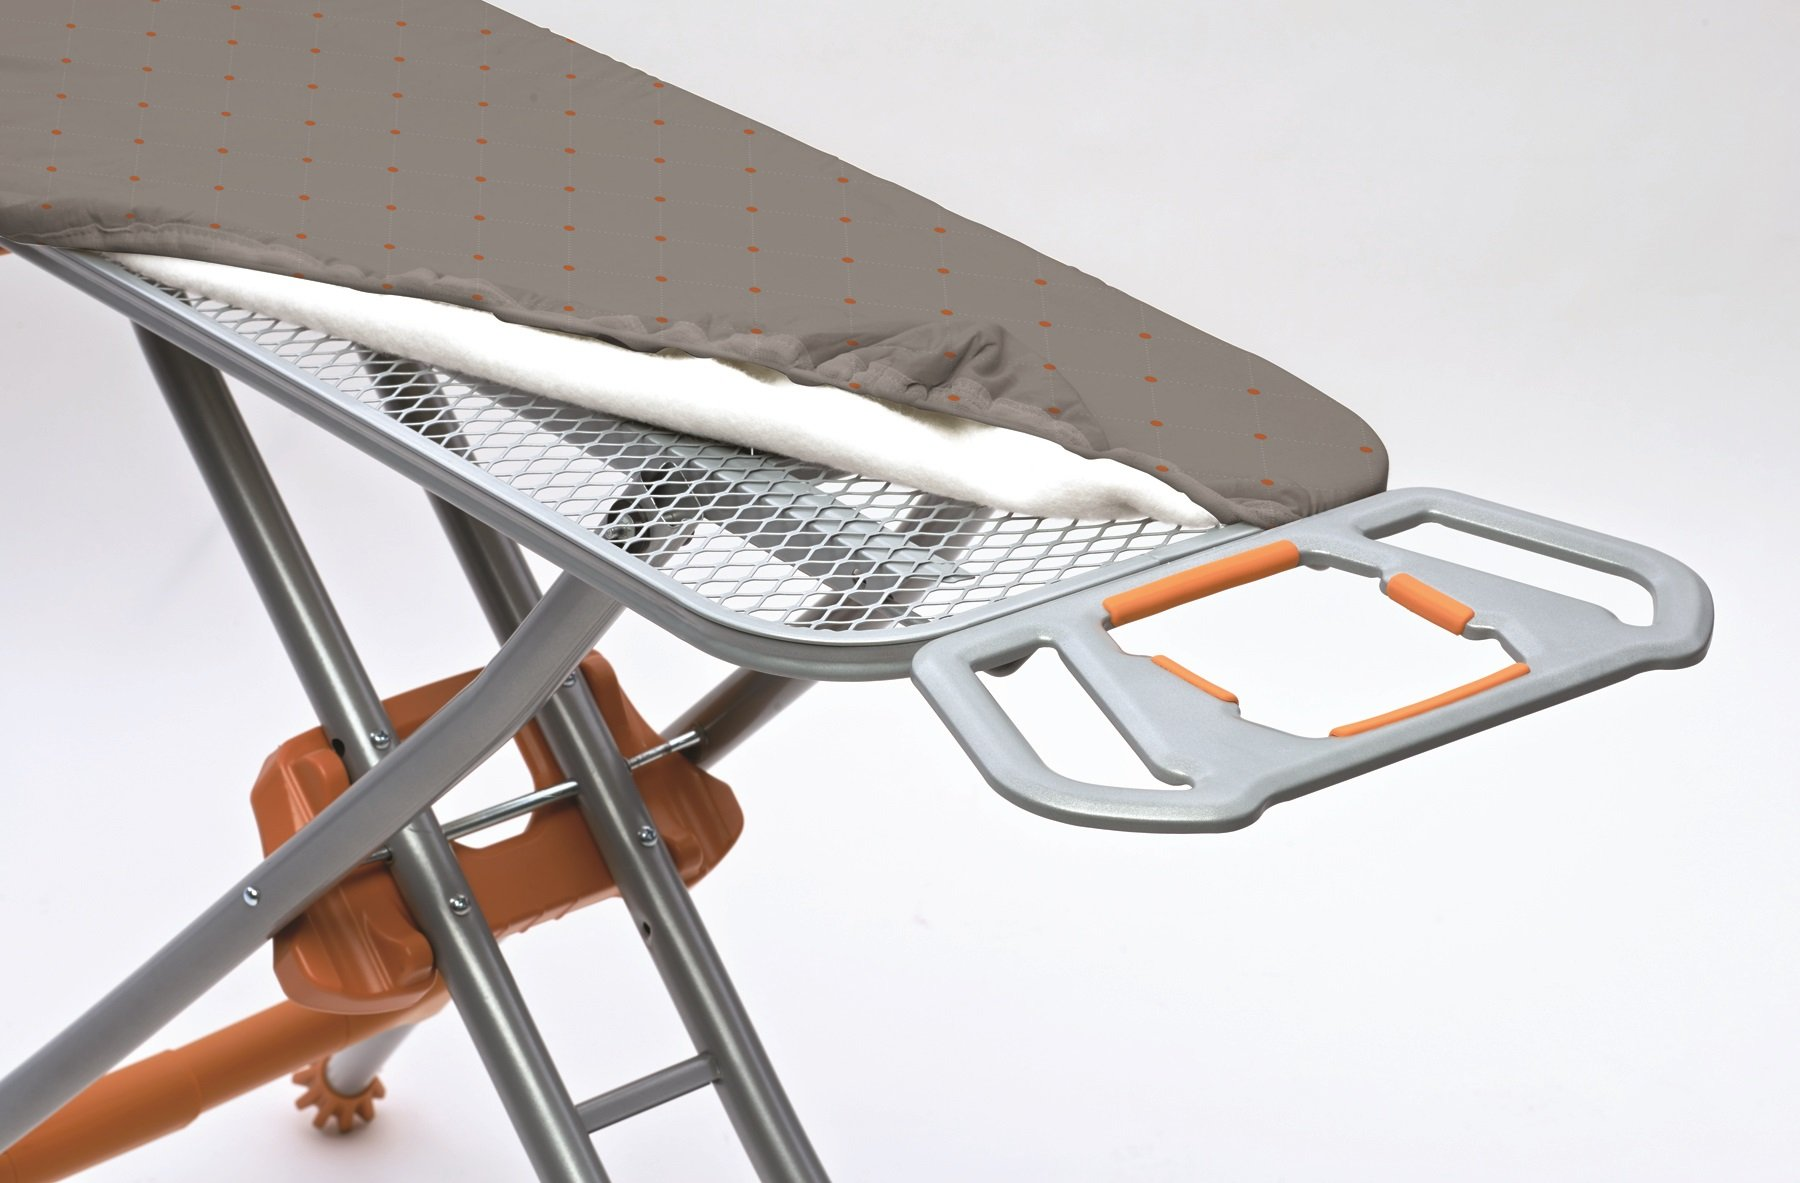 HOMZ Durabilt DX1500 Premium Steel Top Ironing Board with Wide Leg Stability, Adjustable up to 39.5'' by HOMZ (Image #2)